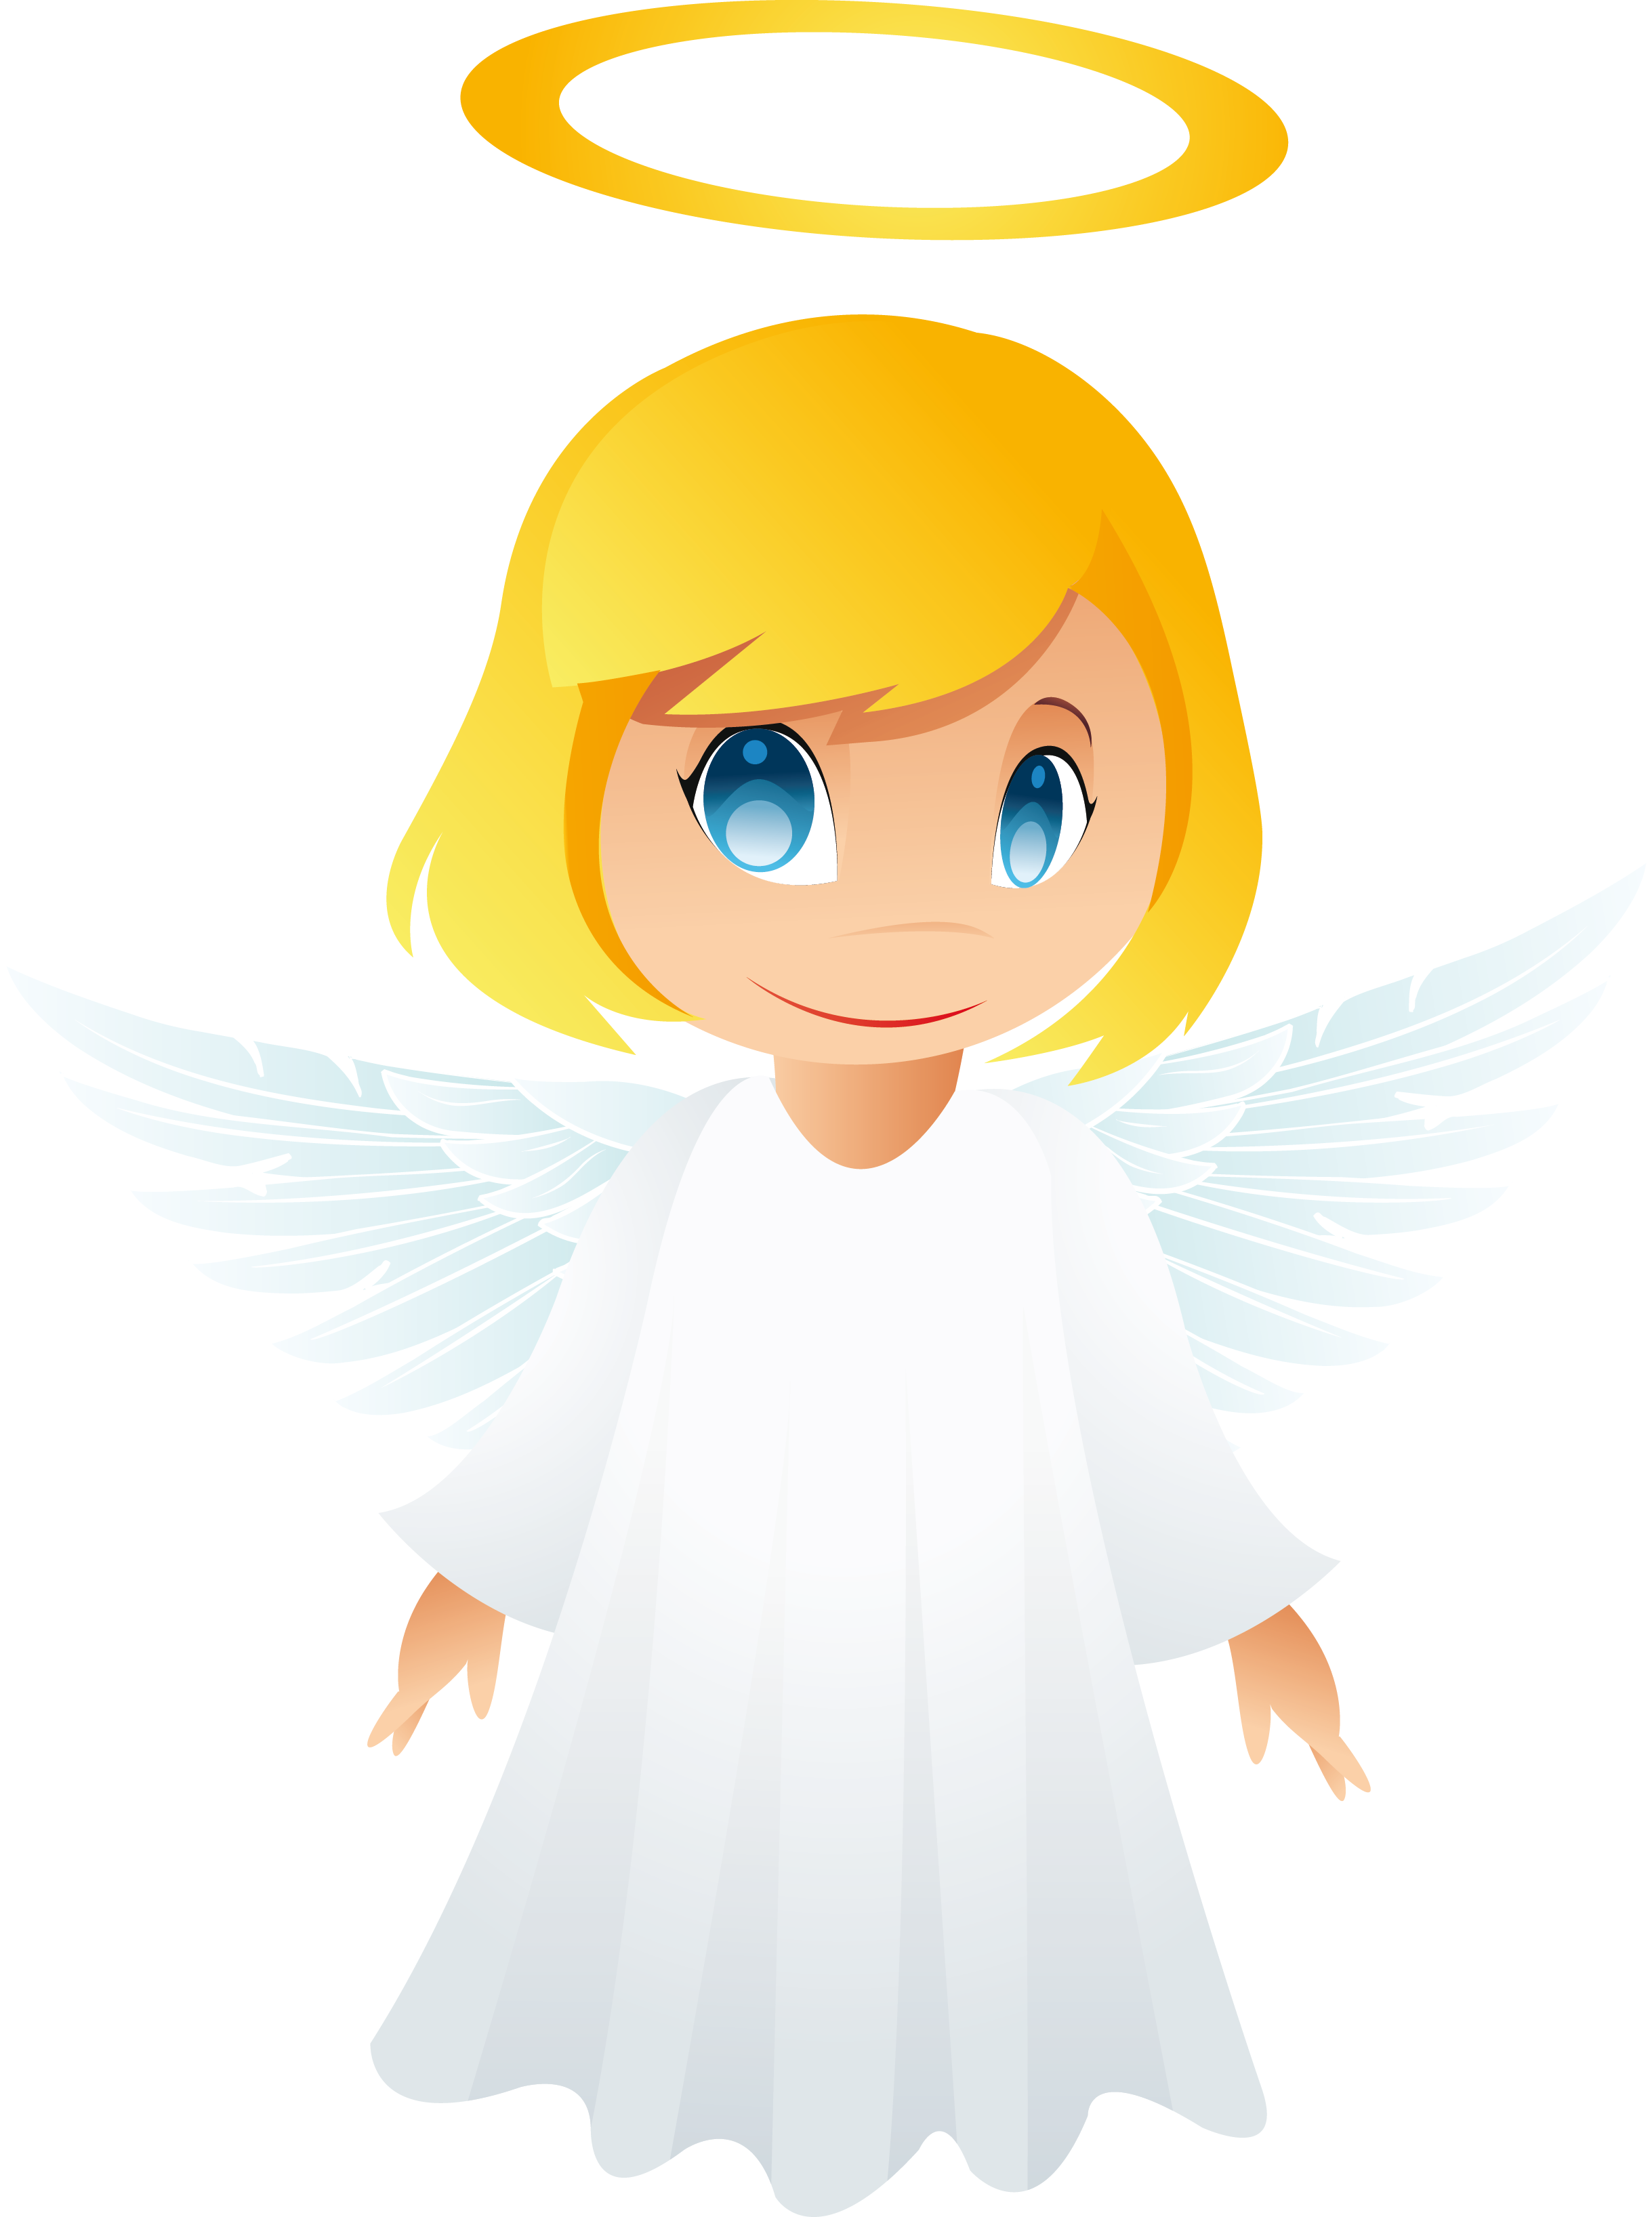 angel clipart free graphics of cherubs and angels the cliparts rh pinterest com free clipart angel wings and halo free clipart angels for labels